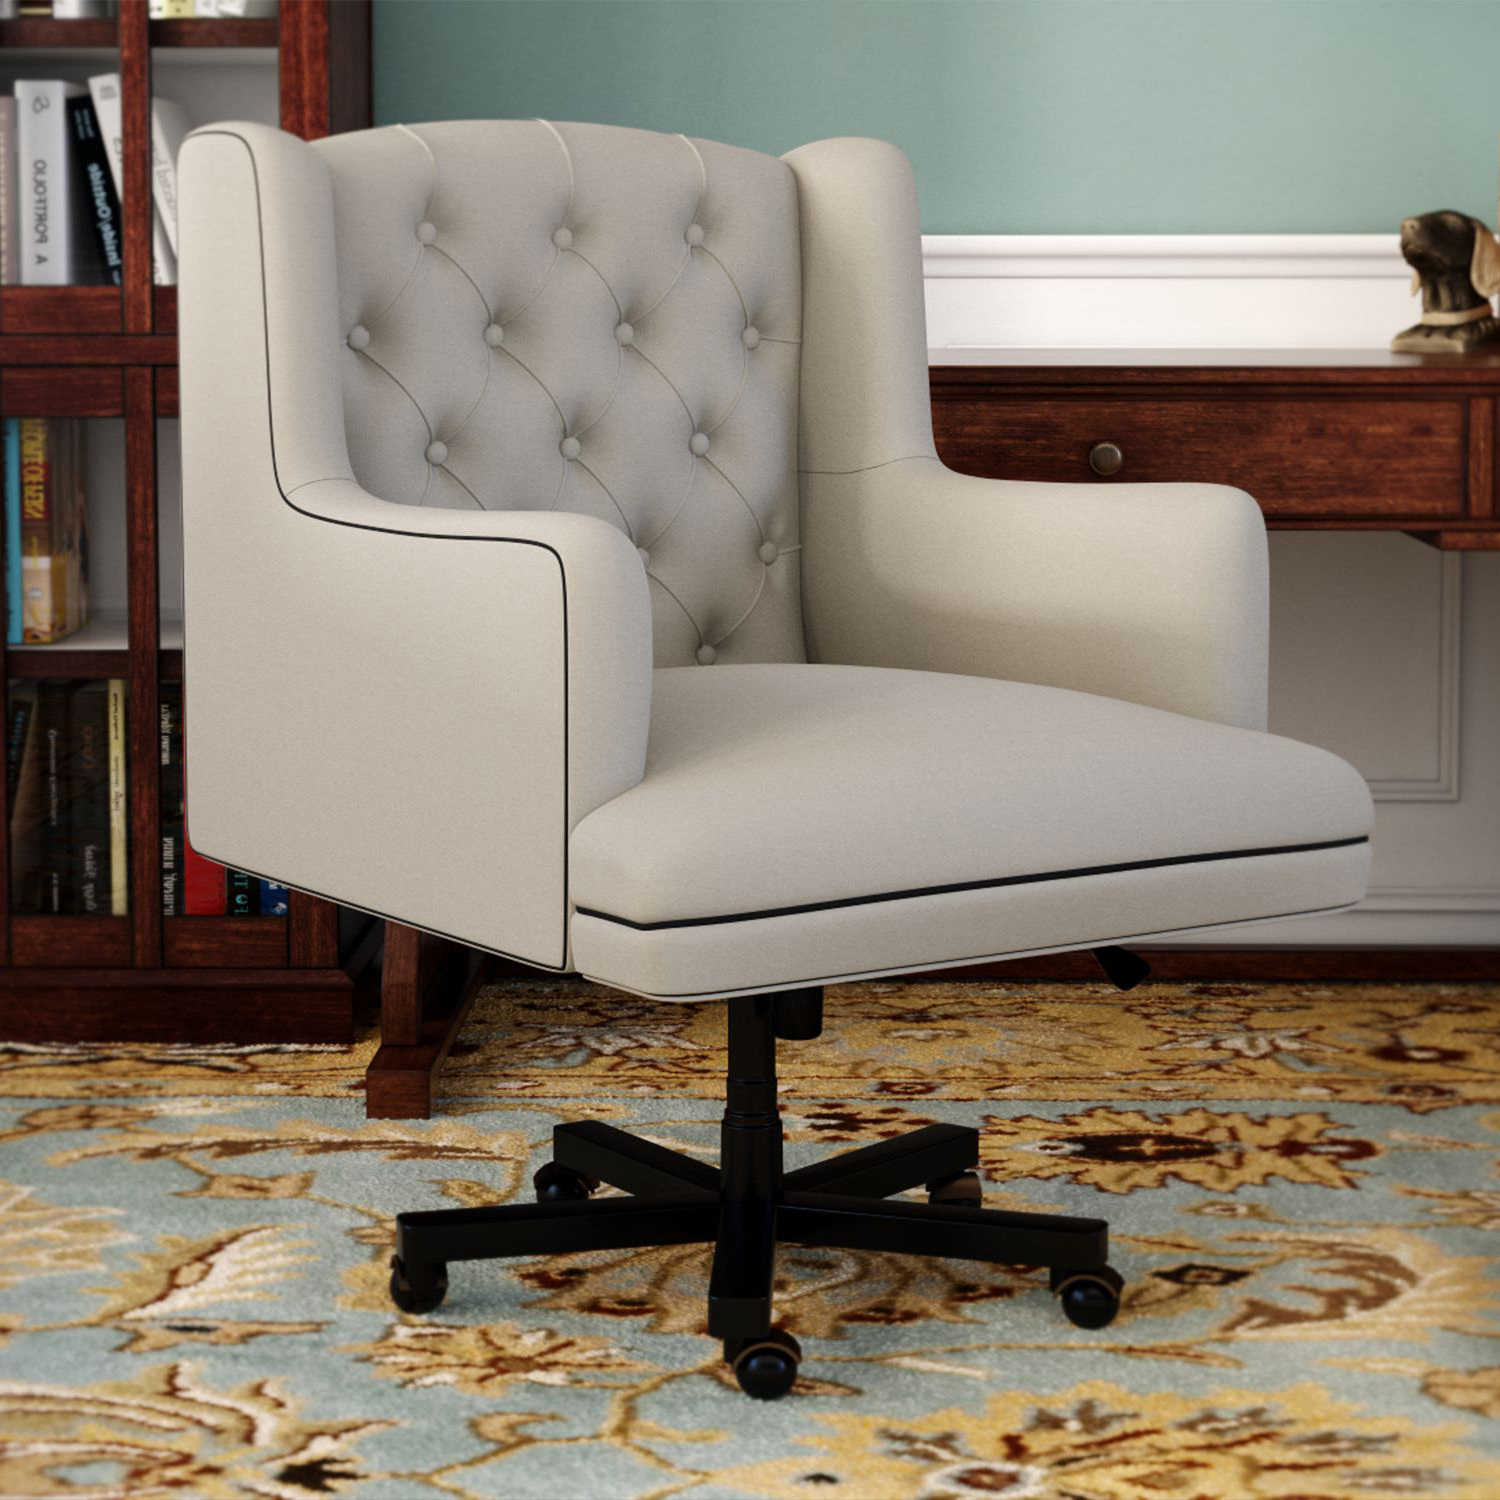 Nichol Swivel Accent Chairs Inside Widely Used Darby Home Co Nichols Desk Chair & Reviews (View 11 of 20)